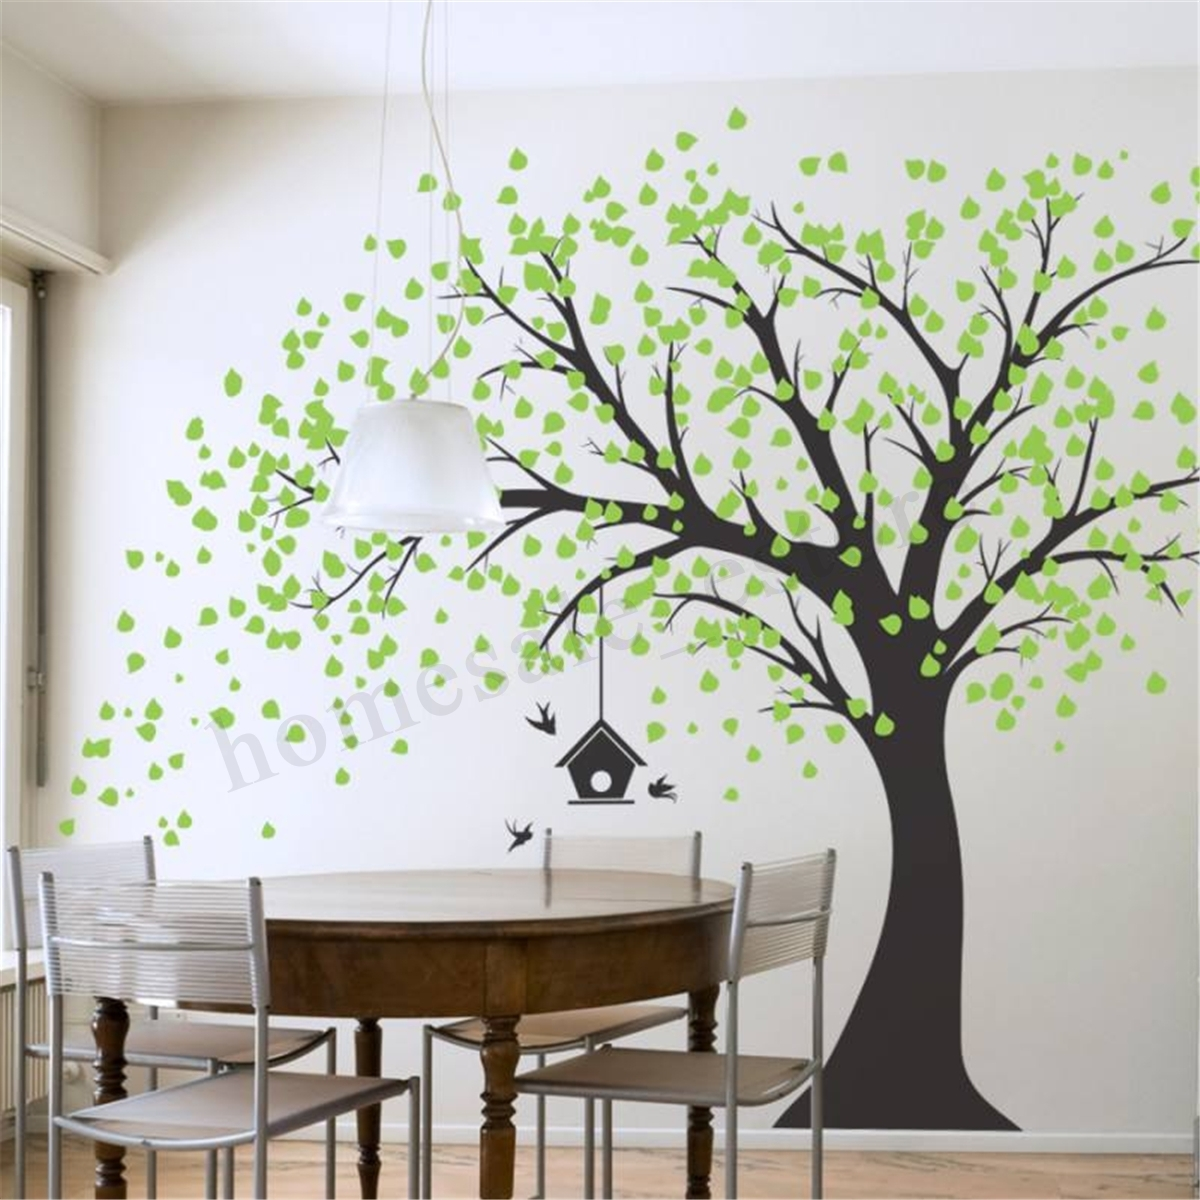 210Cmx180Cm Diy Tree Wall Paper Art Wall Sticker Home Bedroom Bbay Throughout Wall Tree Art (Photo 15 of 20)